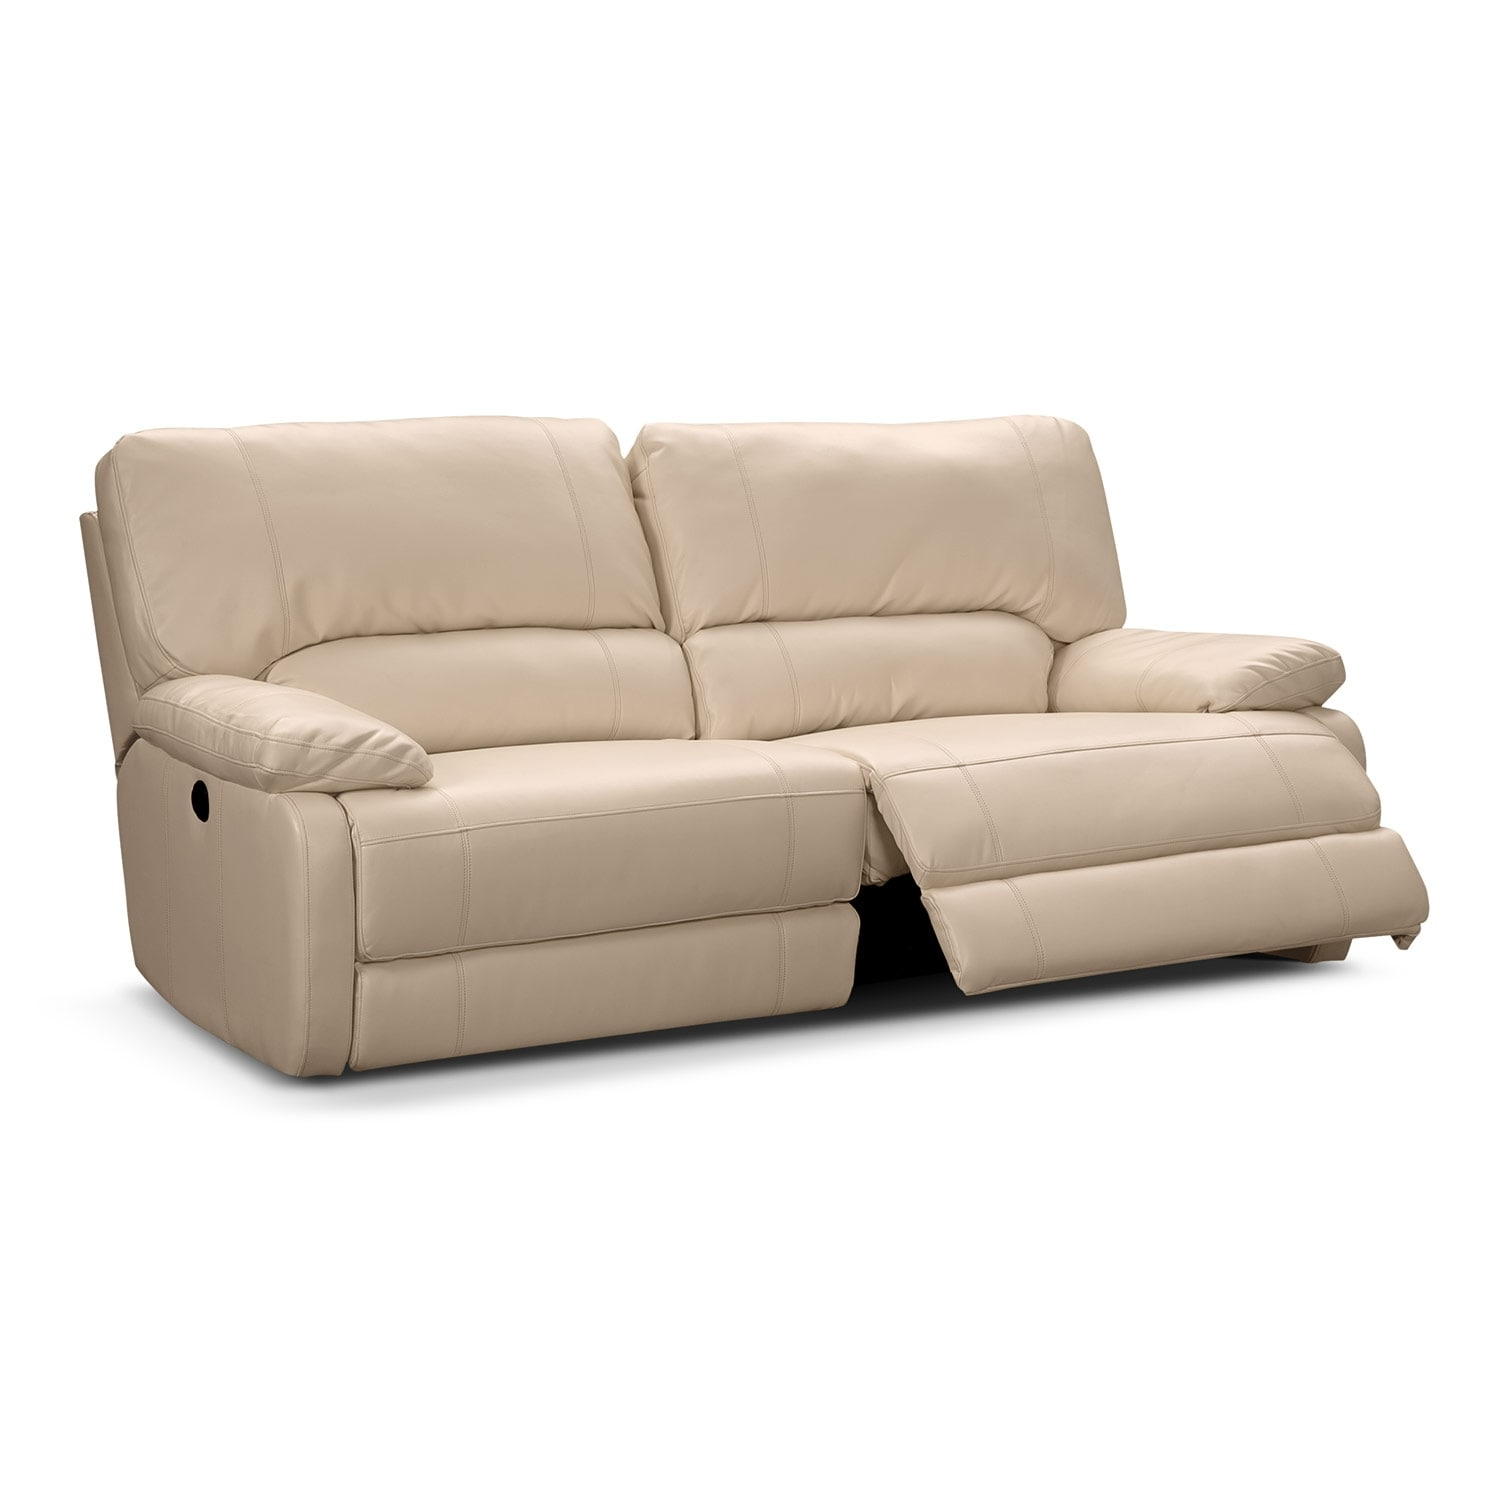 leather sectional sofas with power recliners marshmallow children s flip open sofa coronado reclining value city furniture